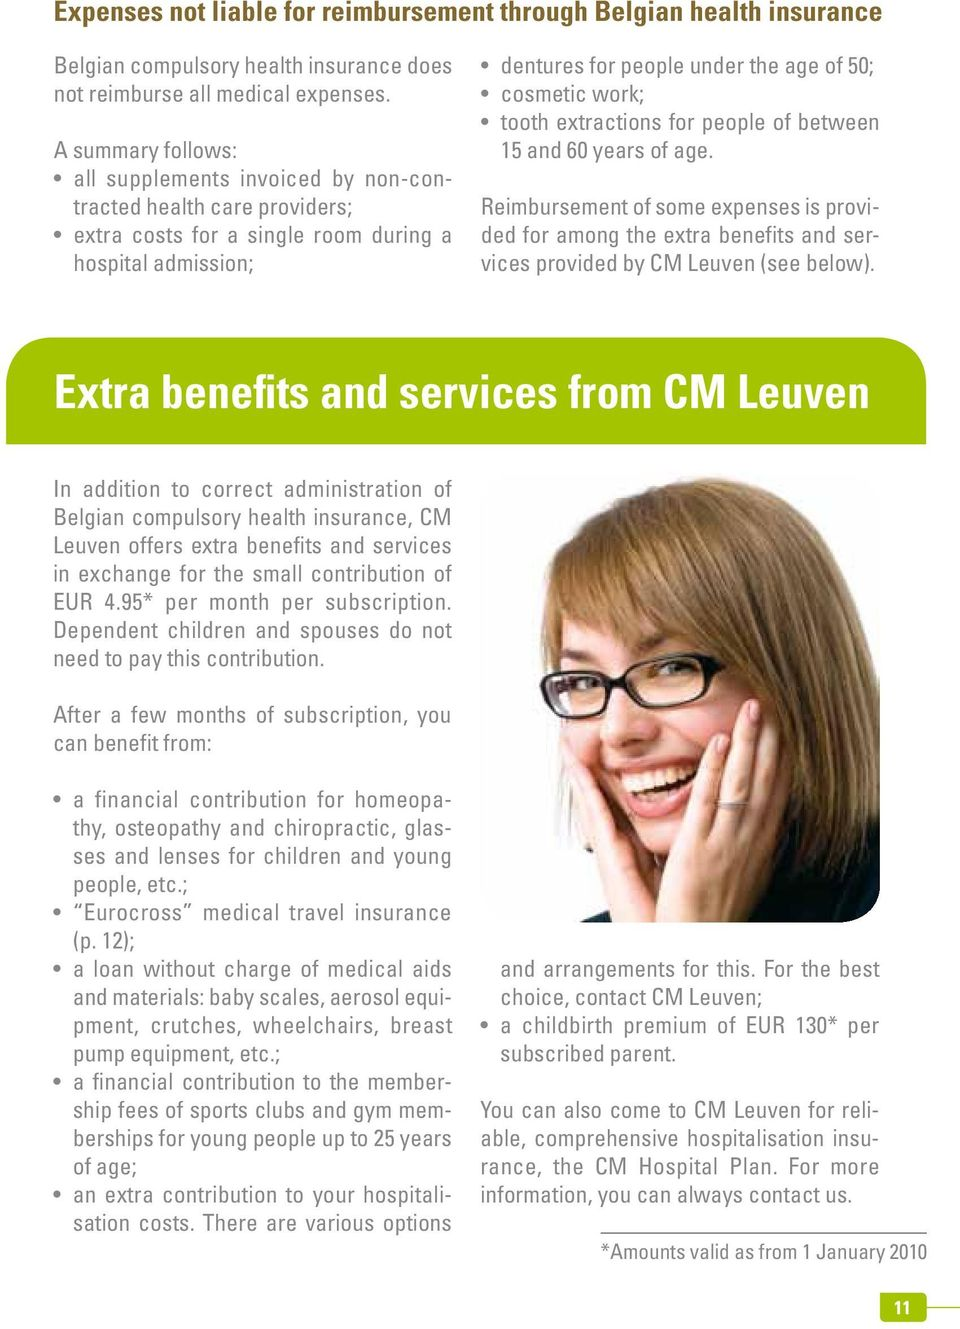 tooth extractions for people of between 15 and 60 years of age. Reimbursement of some expenses is provided for among the extra benefits and services provided by CM Leuven (see below).